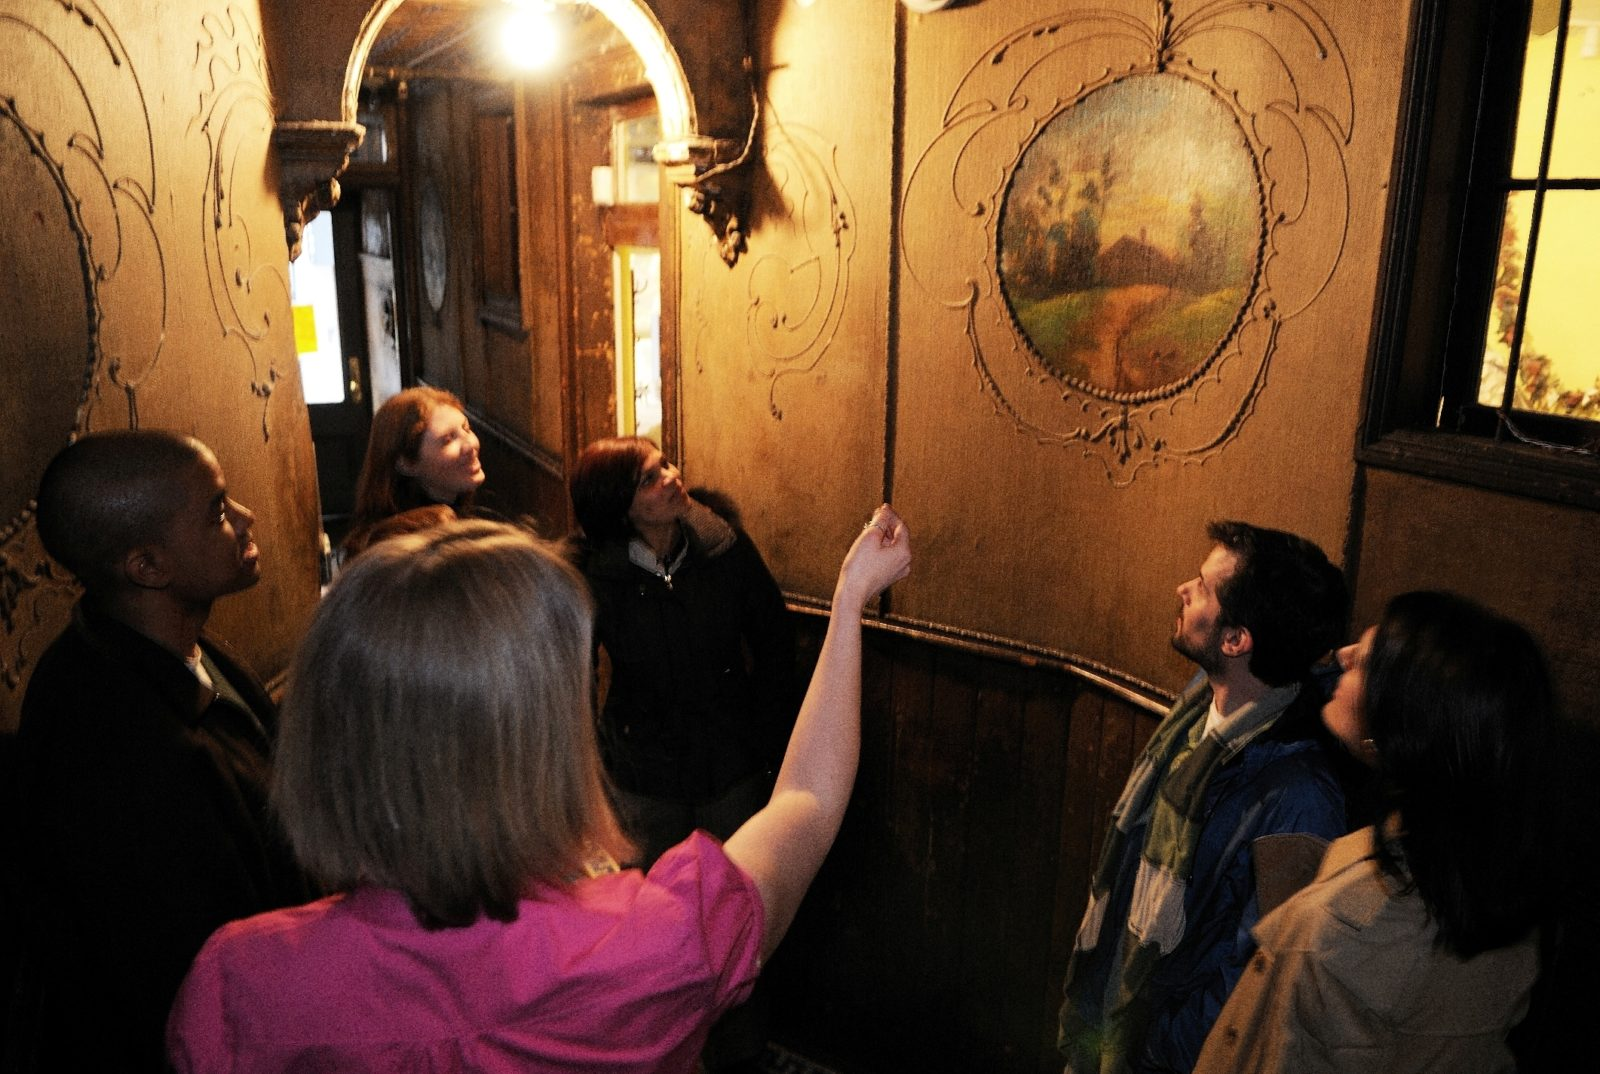 A museum educator points at a painted mural on a wall at 97 Orchard Street